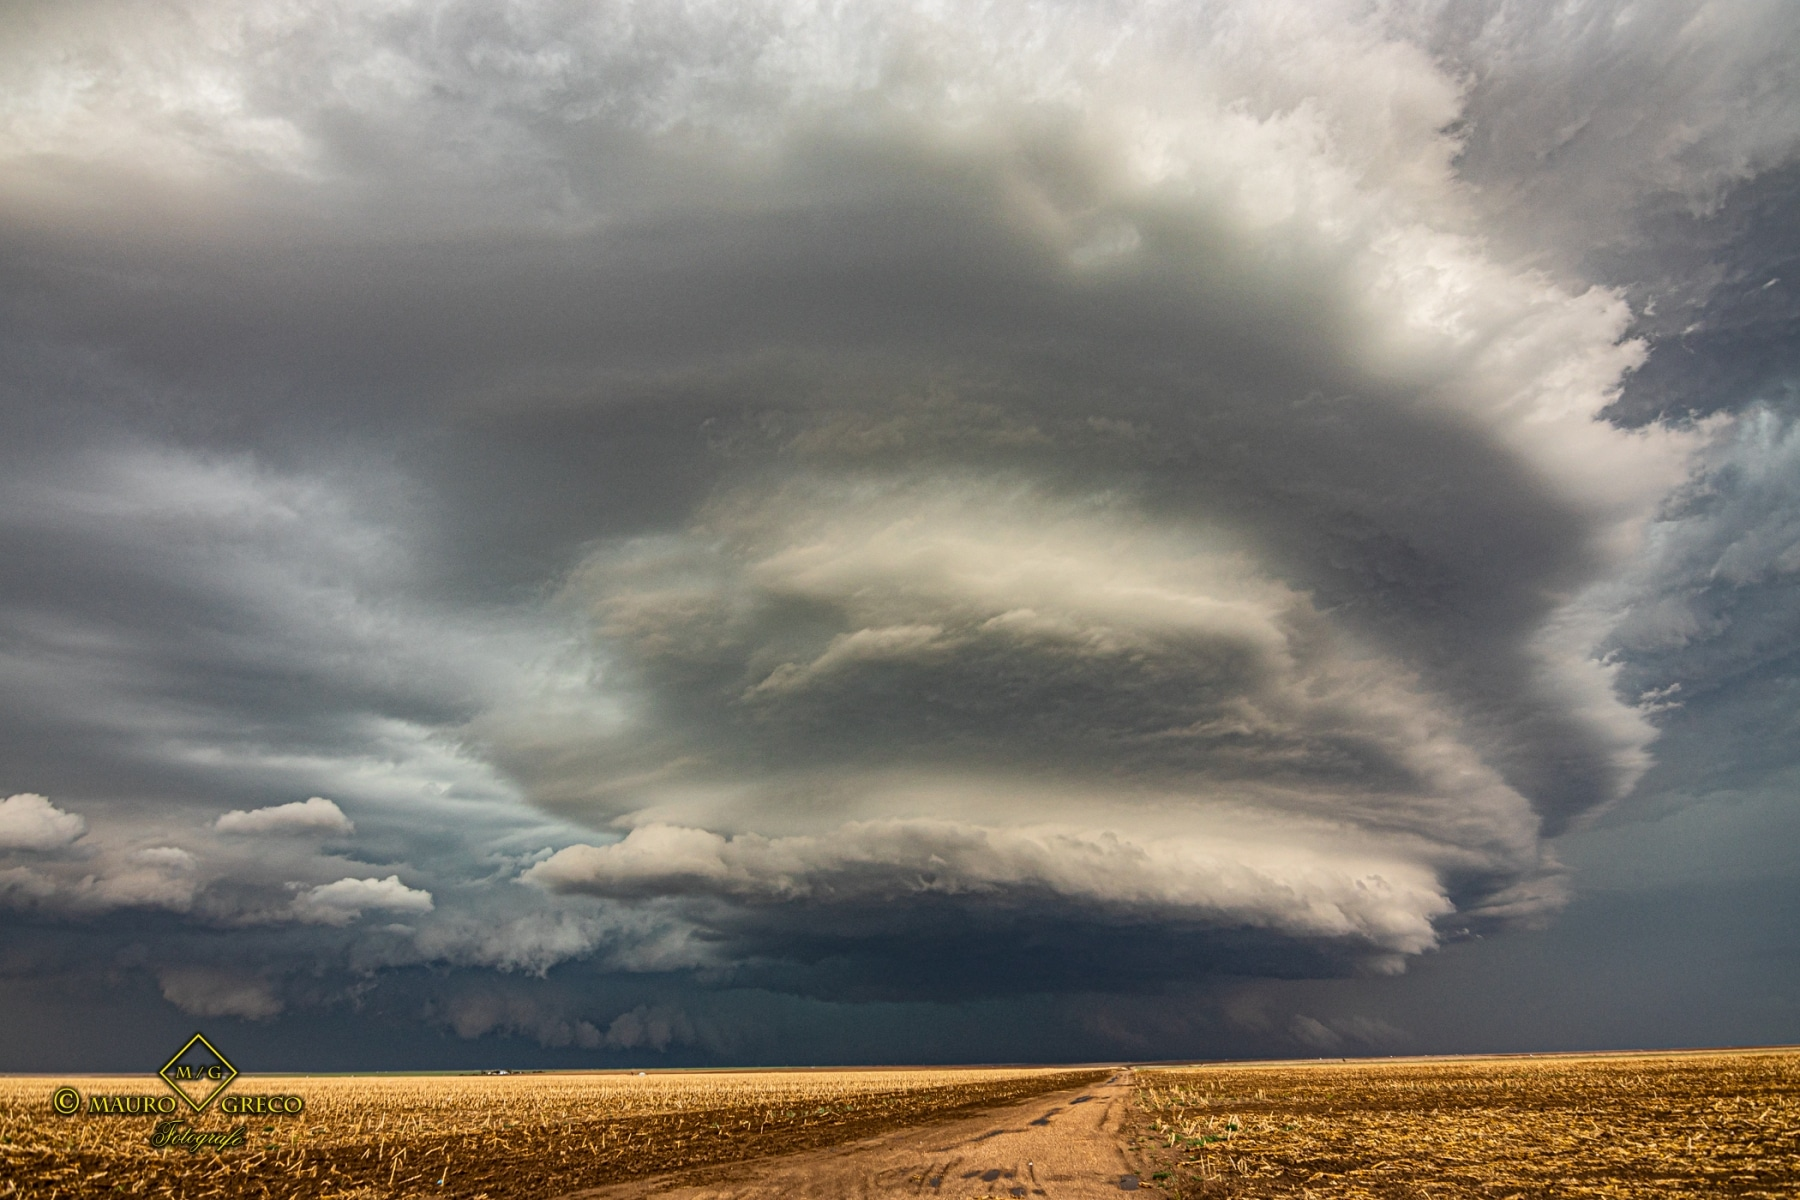 May 21 2020 Sublette Kansas mothership Supercell - Tornado Tour StormWind